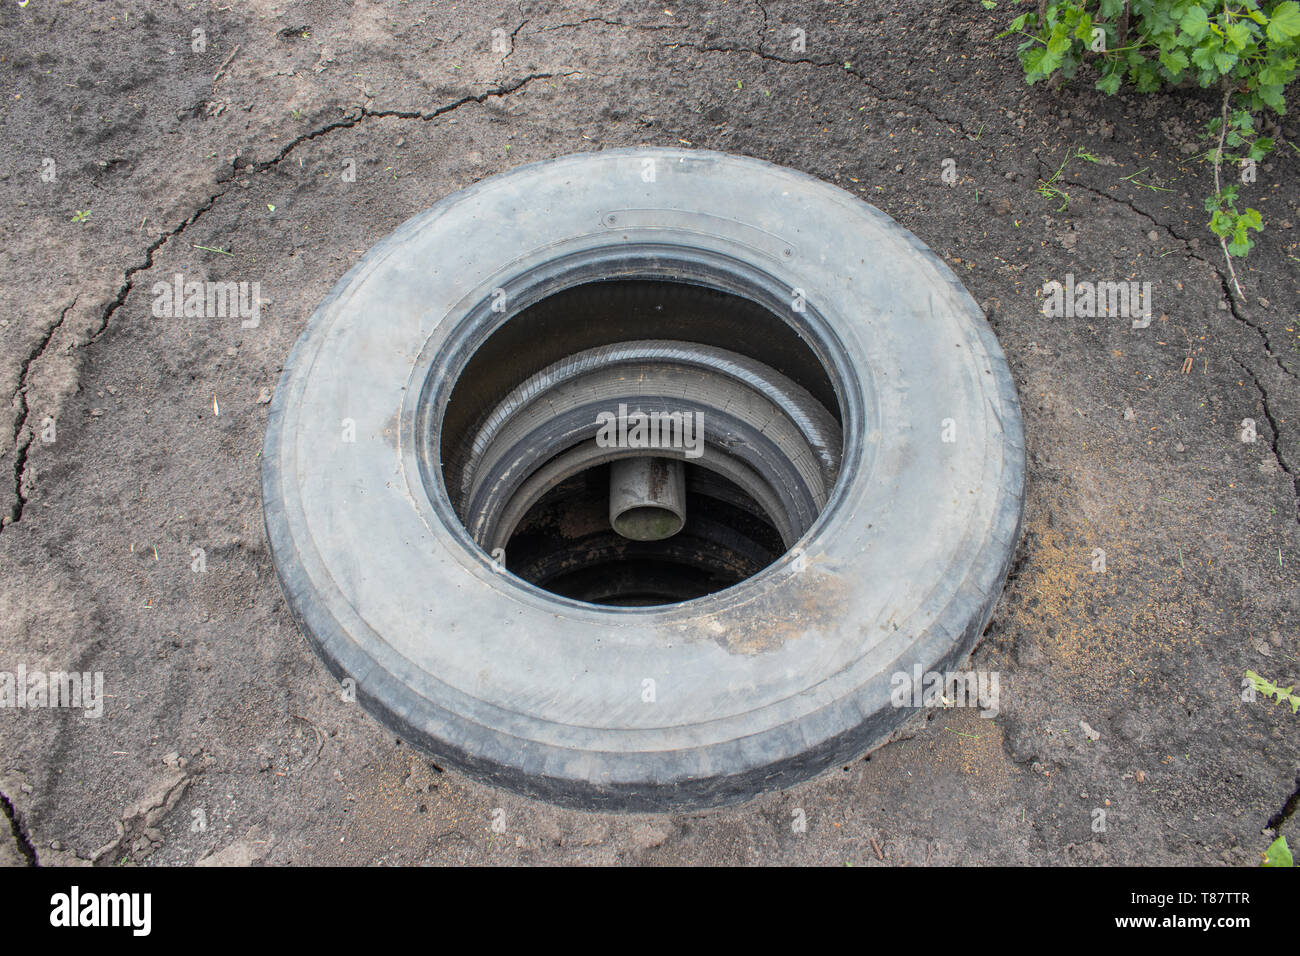 Sewer pit with car tires. Sewer system. - Stock Image